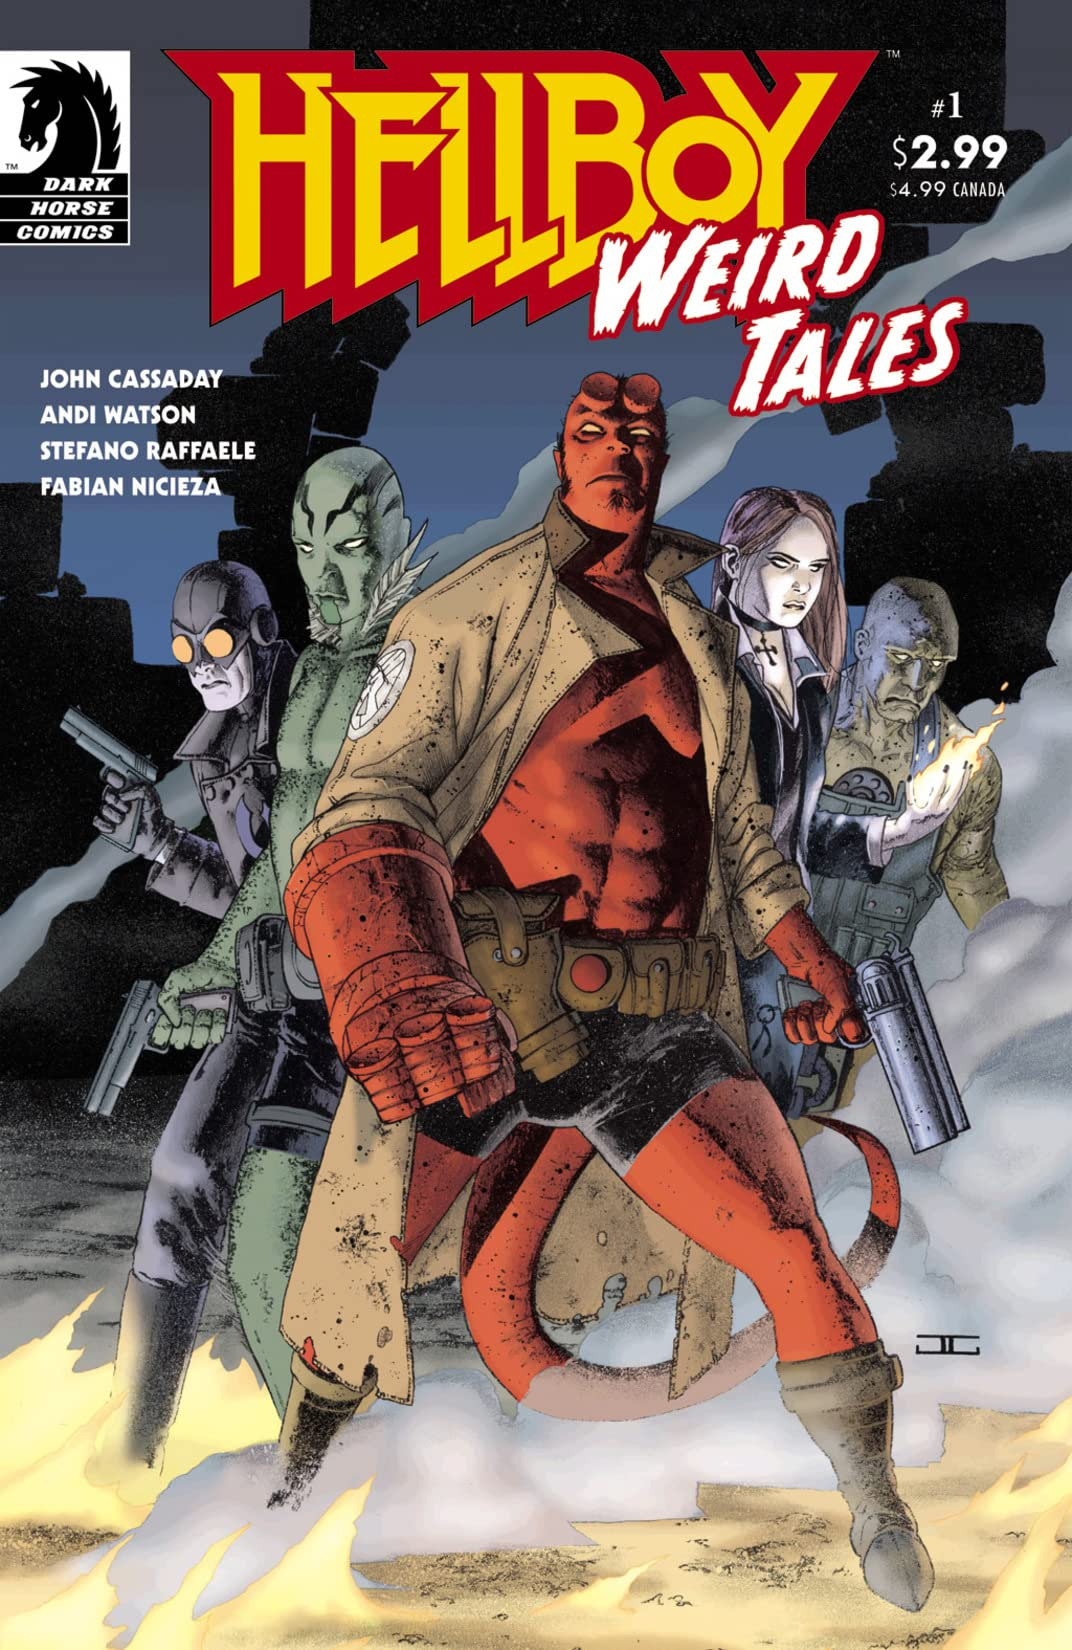 Hellboy: Weird Tales #1